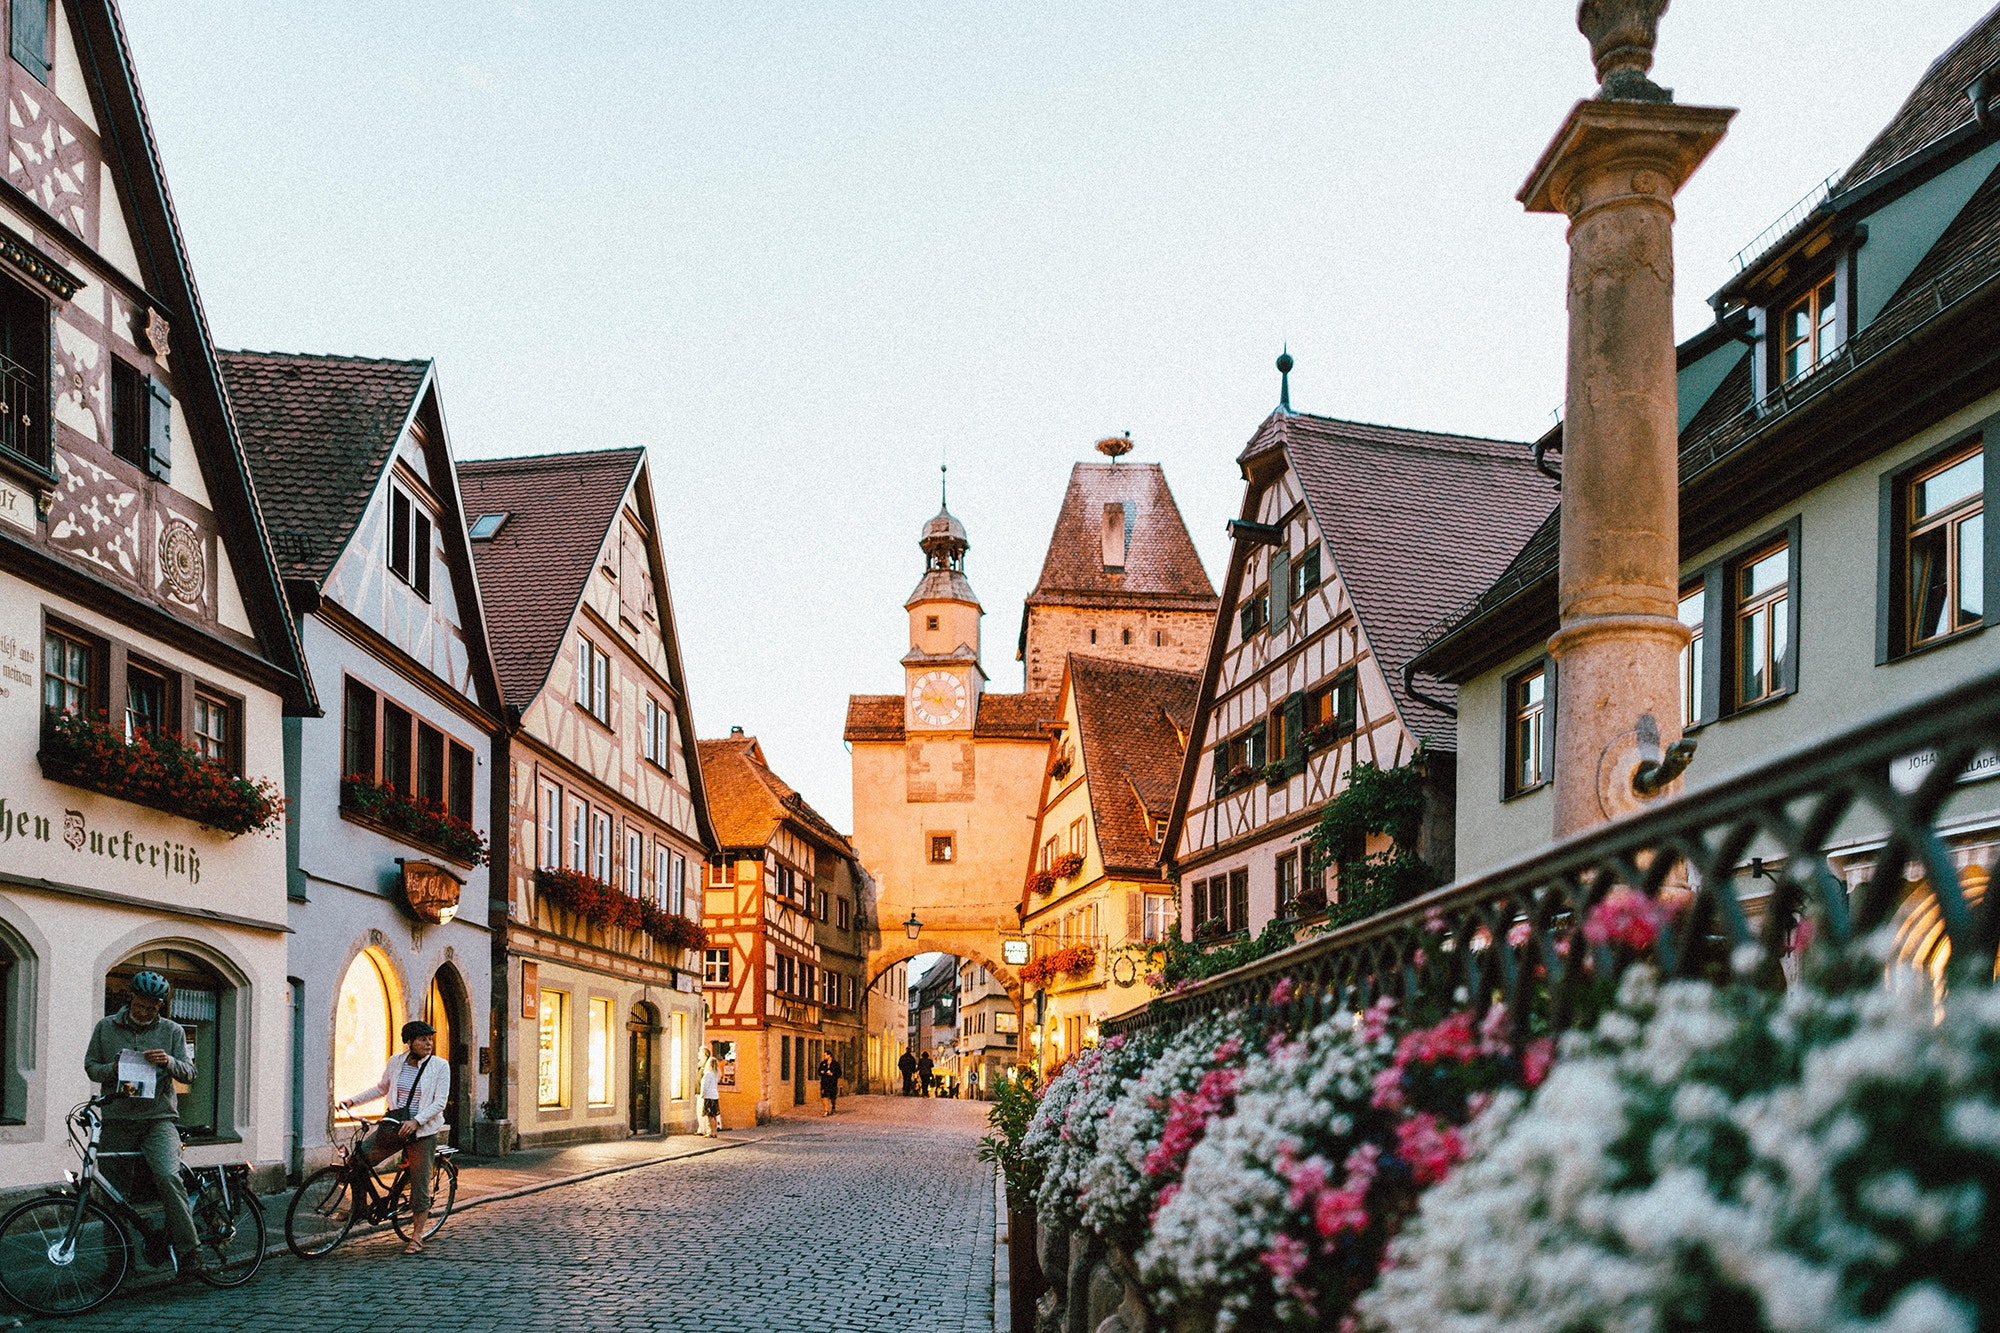 Small towns like the Bavarian village of Rothenburg ob der Tauber, Germany, are becoming increasingly popular to visit.